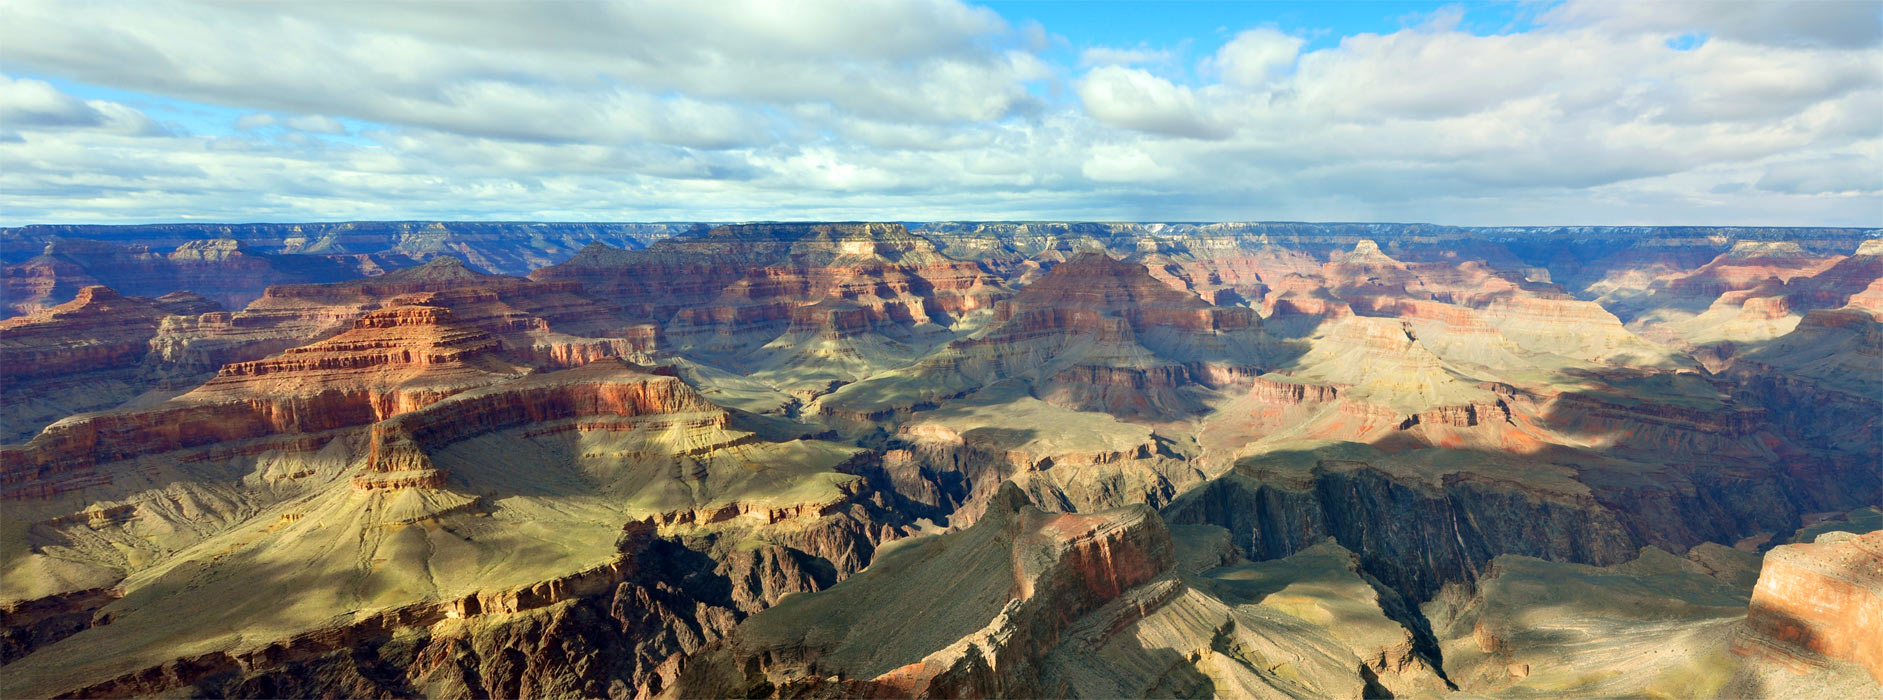 Grand Canyon Mariages